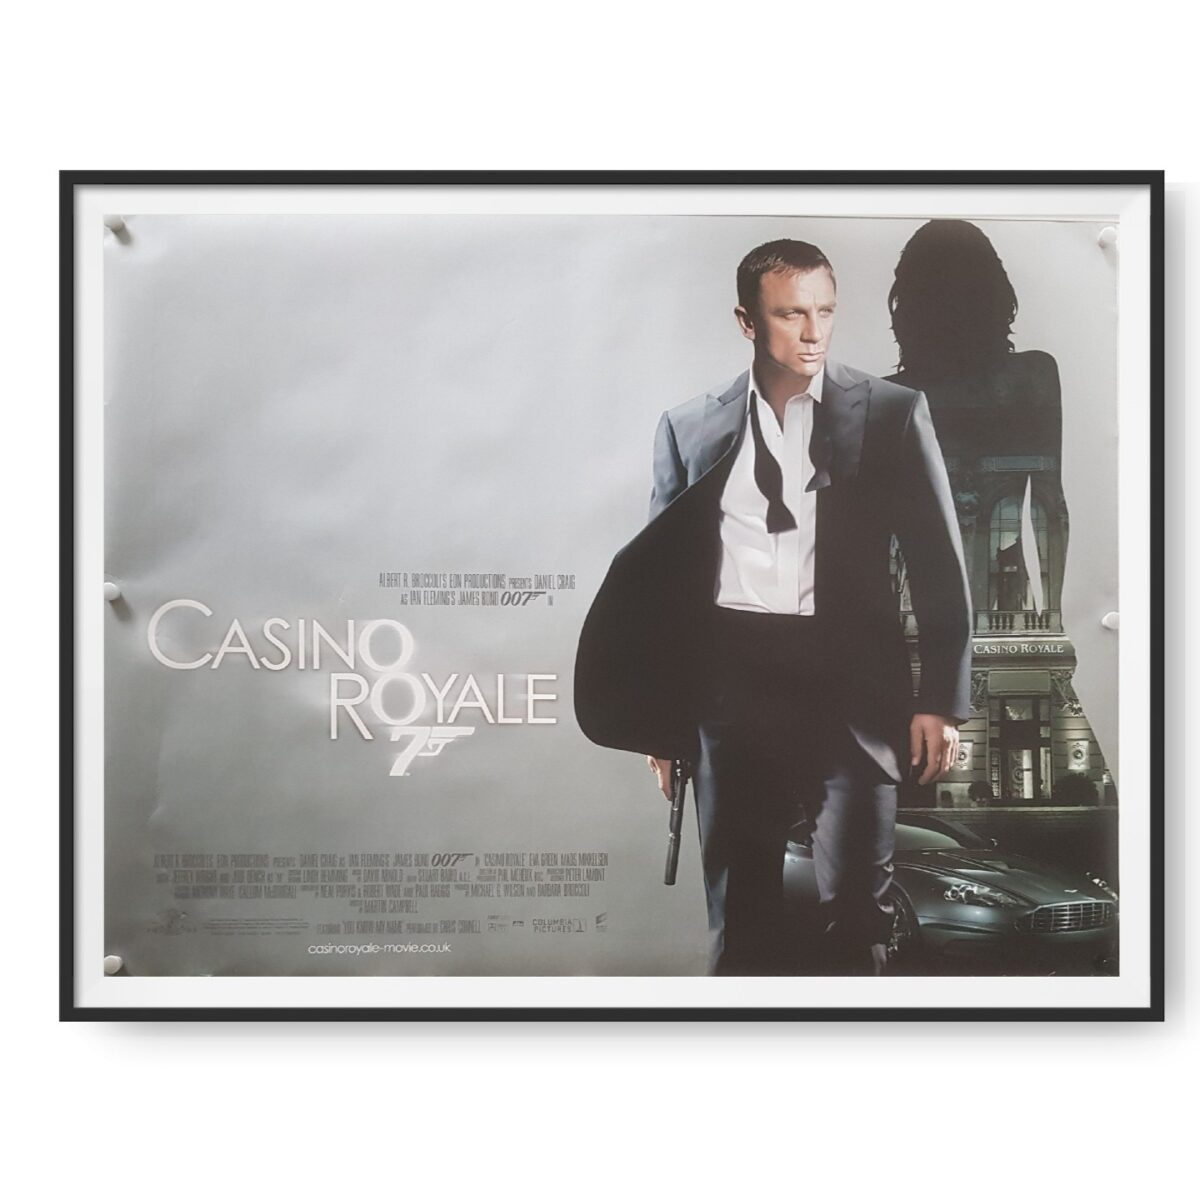 This UK film poster for the film Casino Royale show Daniel Craig as Bond in front of a grey background.